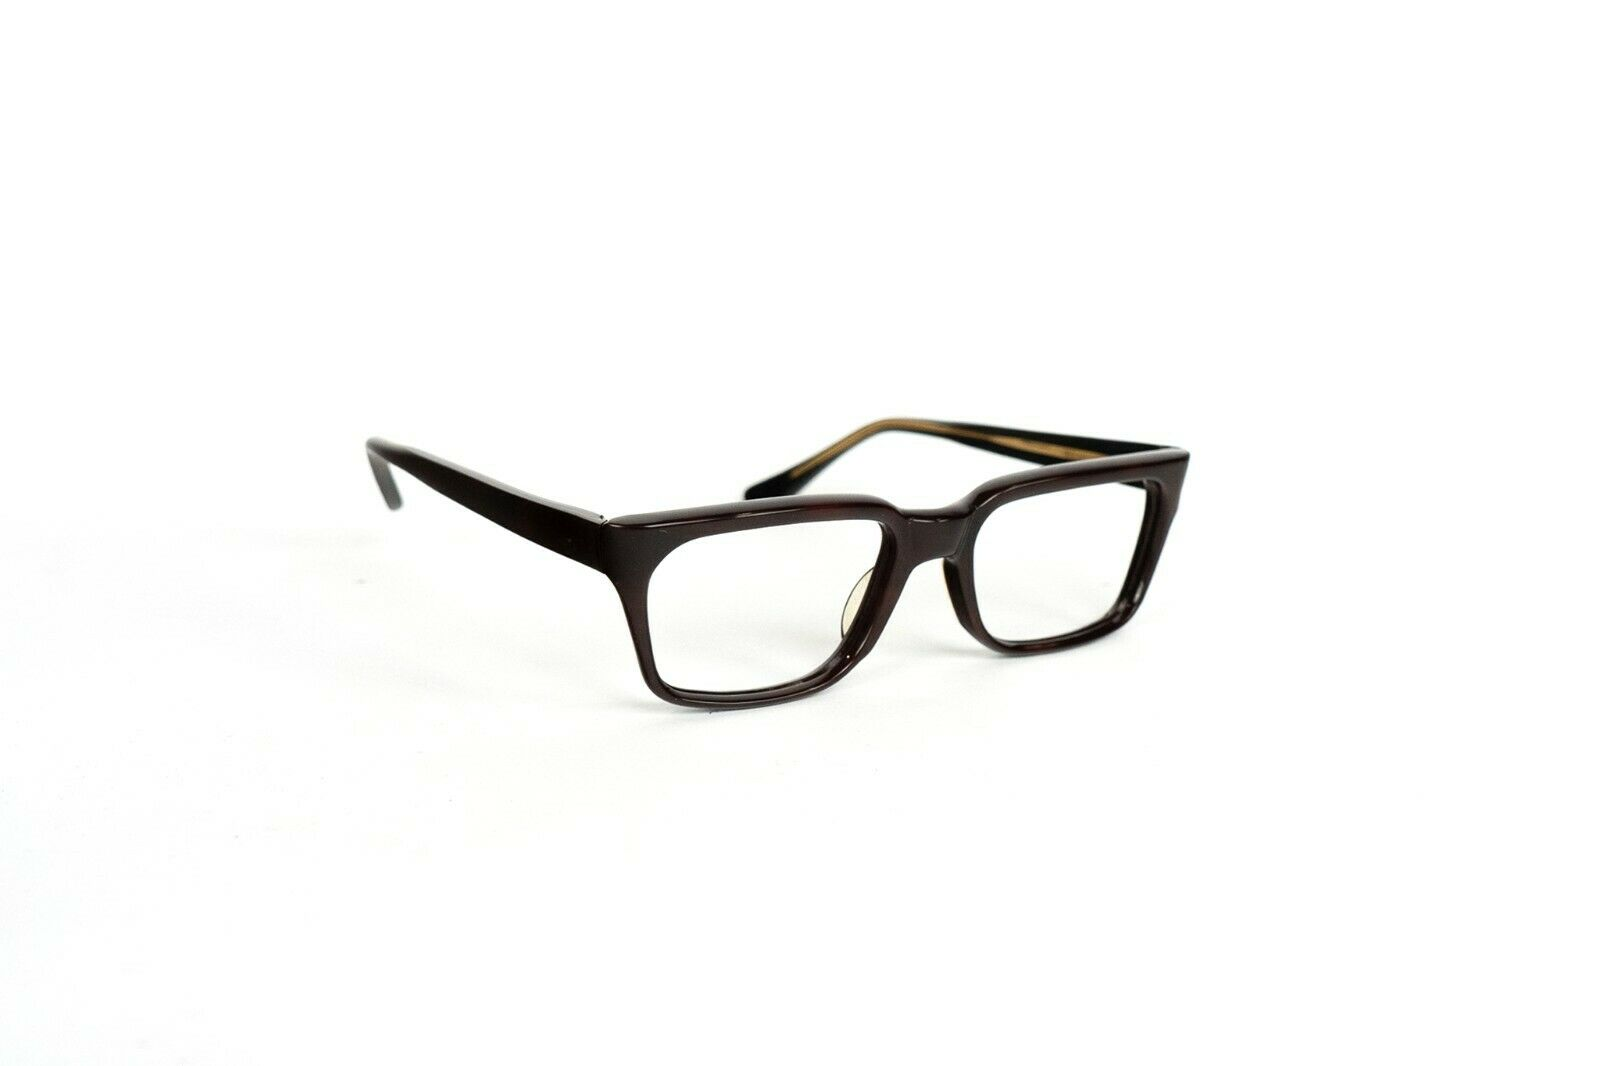 Brown Acrylic Frame Square Shape Glasses Vintage Fashion Accessory DeadStock